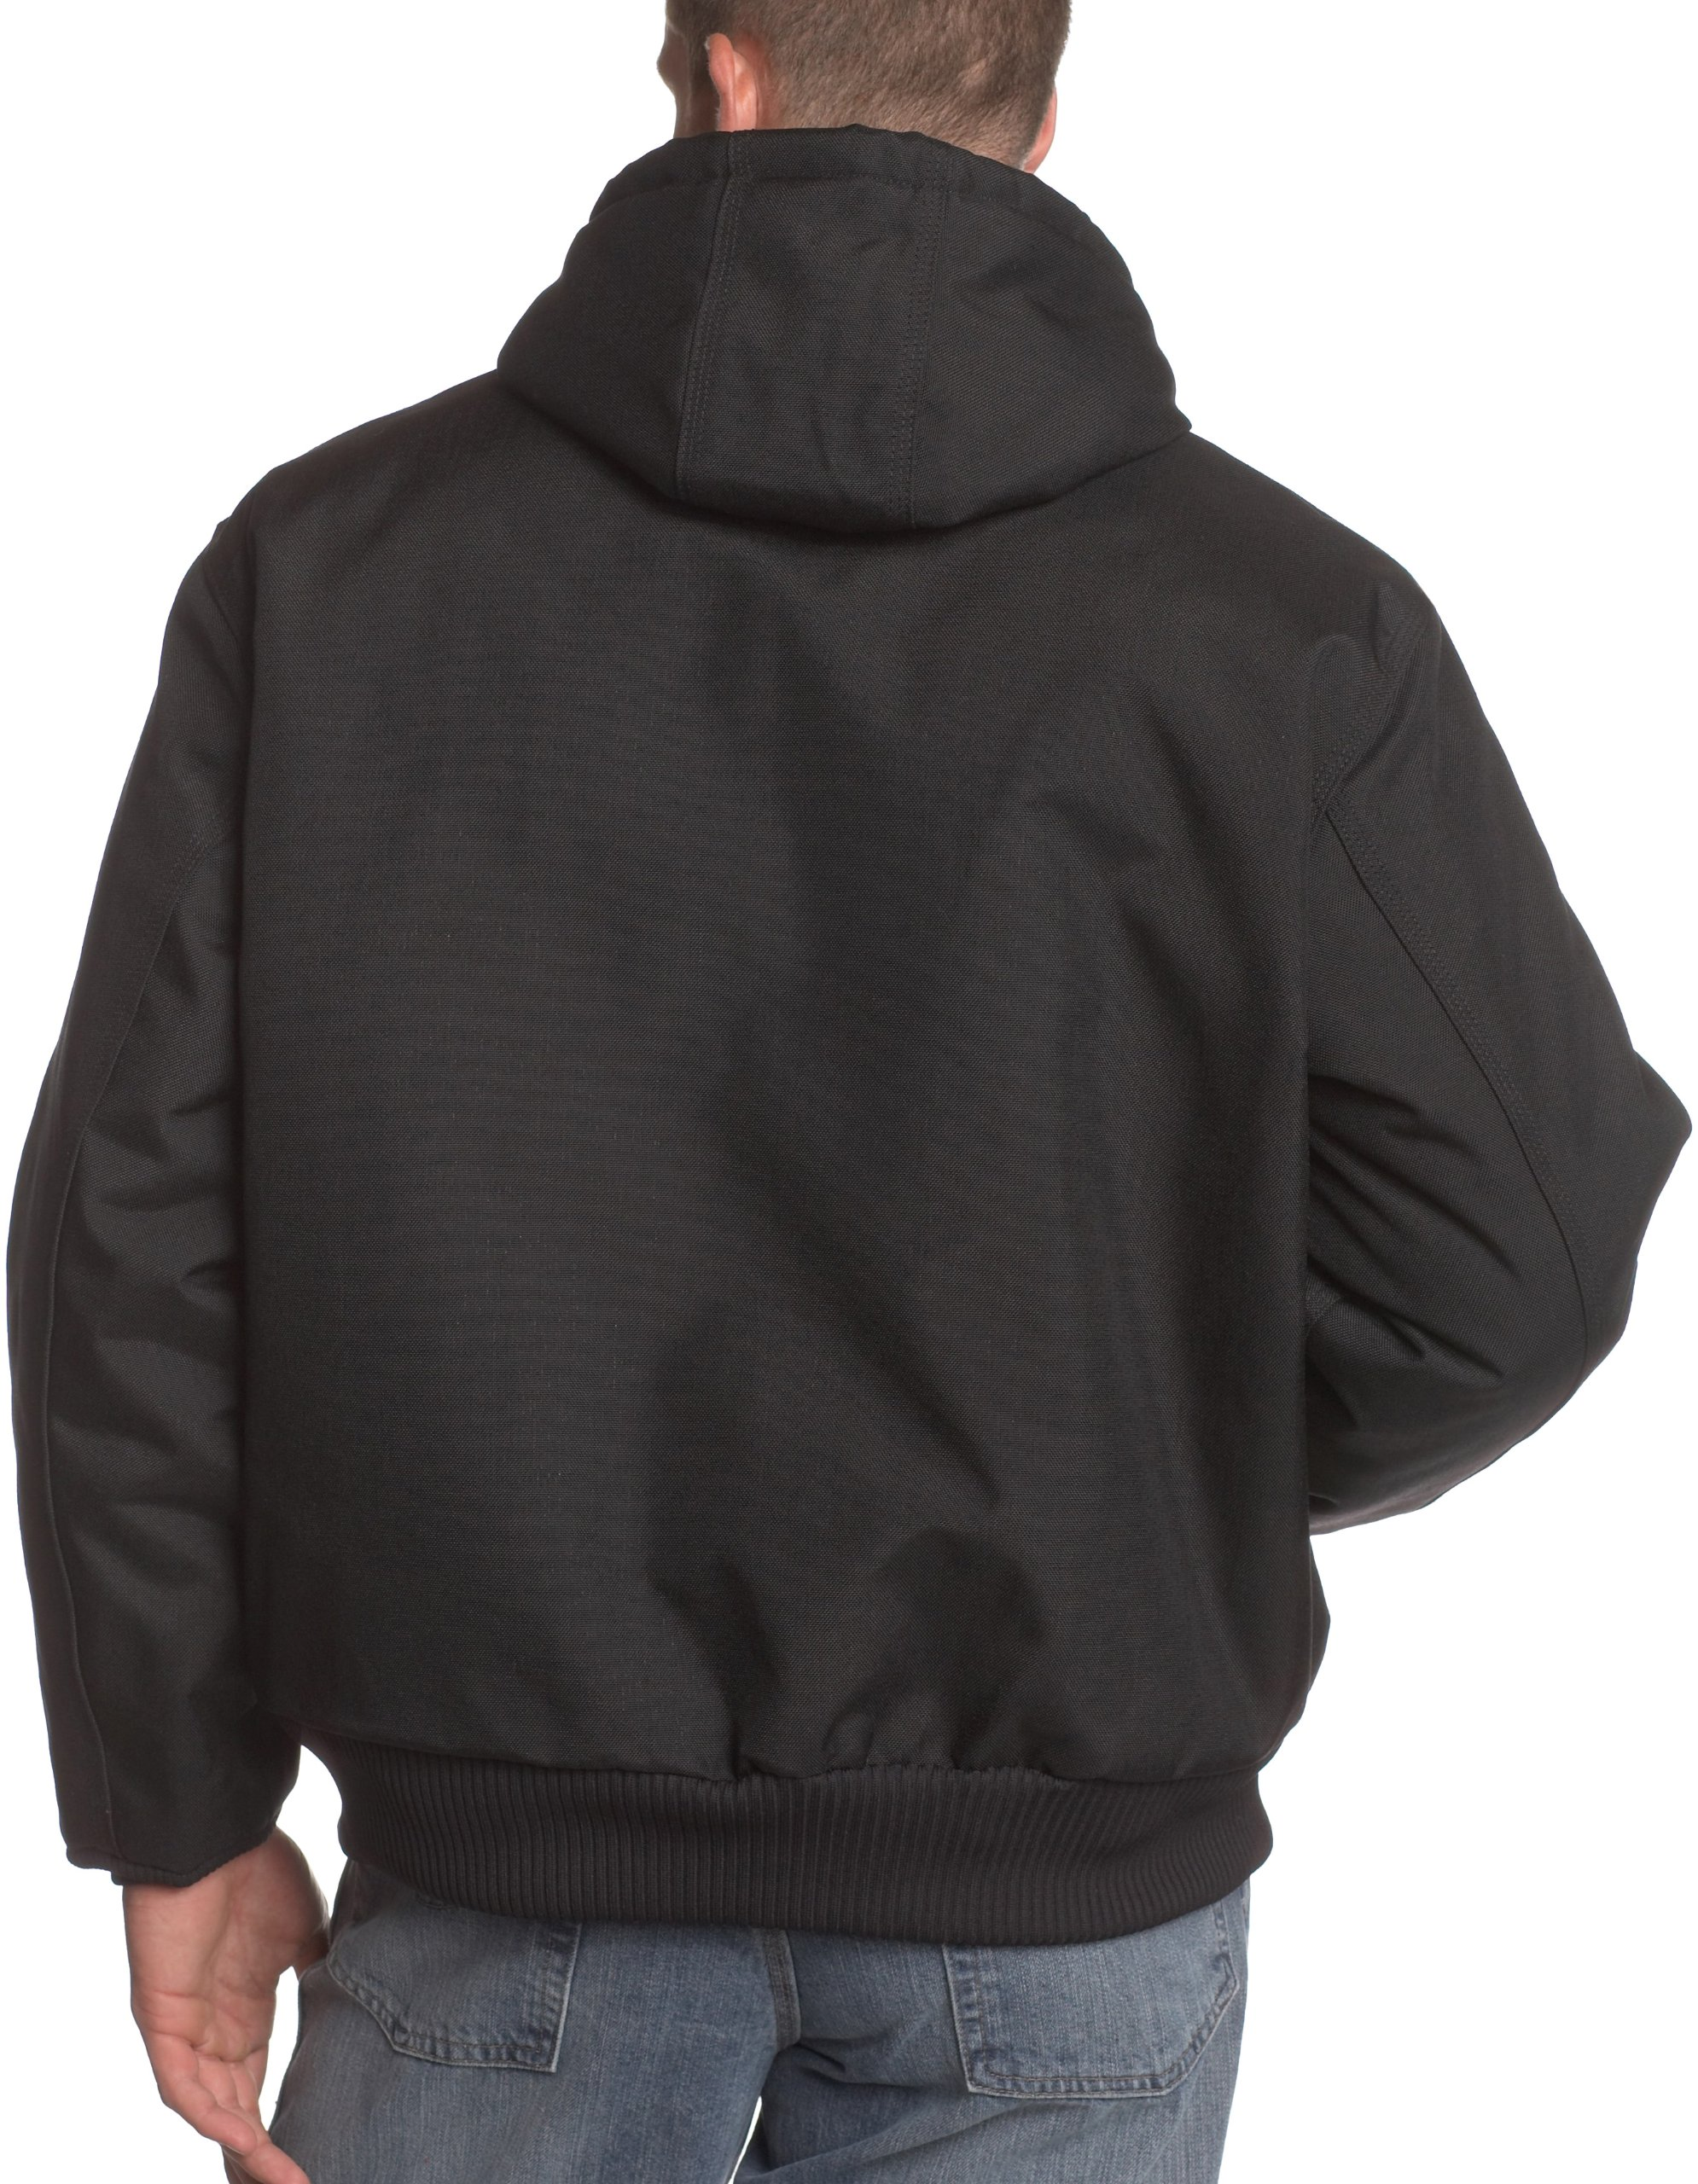 Carhartt Men's Arctic Quilt Lined Yukon Active Jacket,Black,X-Large by Carhartt (Image #2)